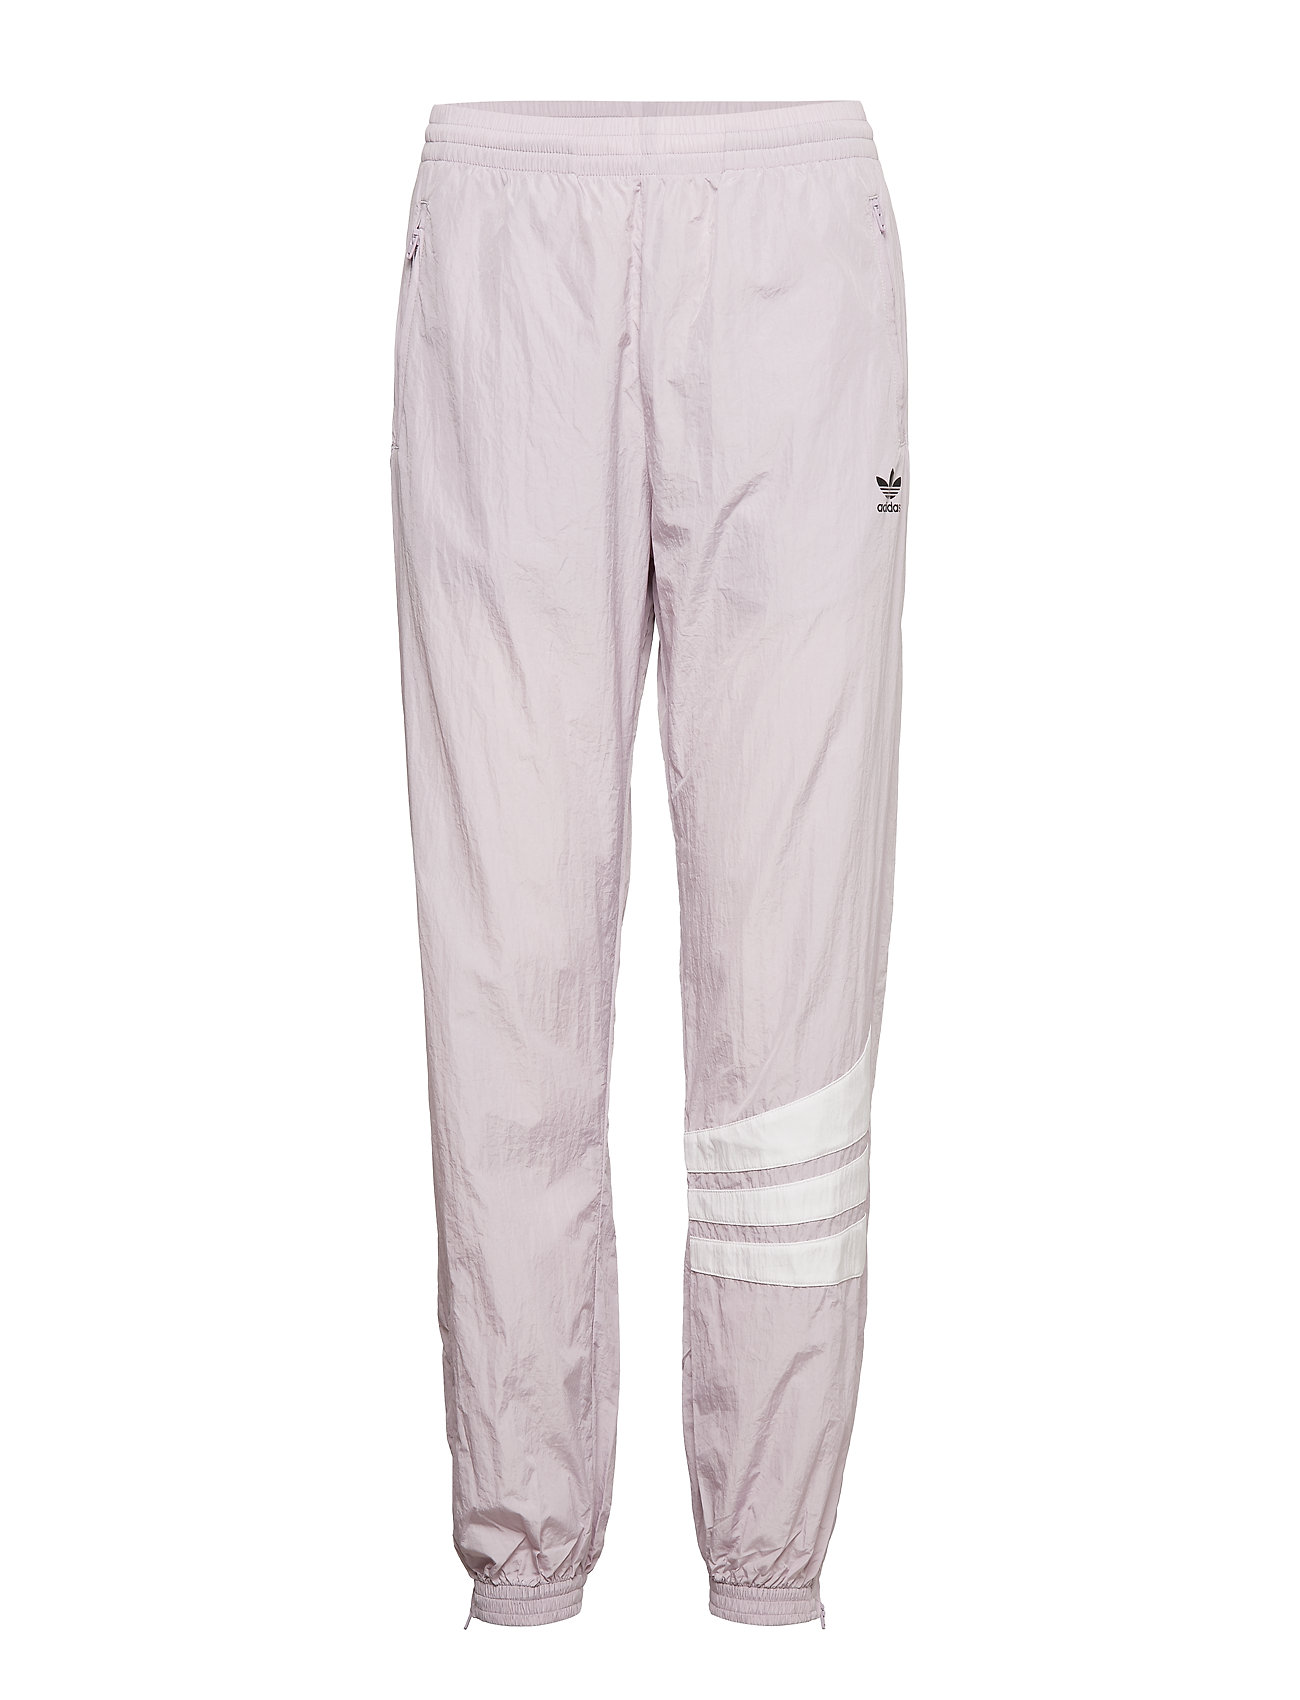 Adidas Originals CUFFED PANTS Sweatpants